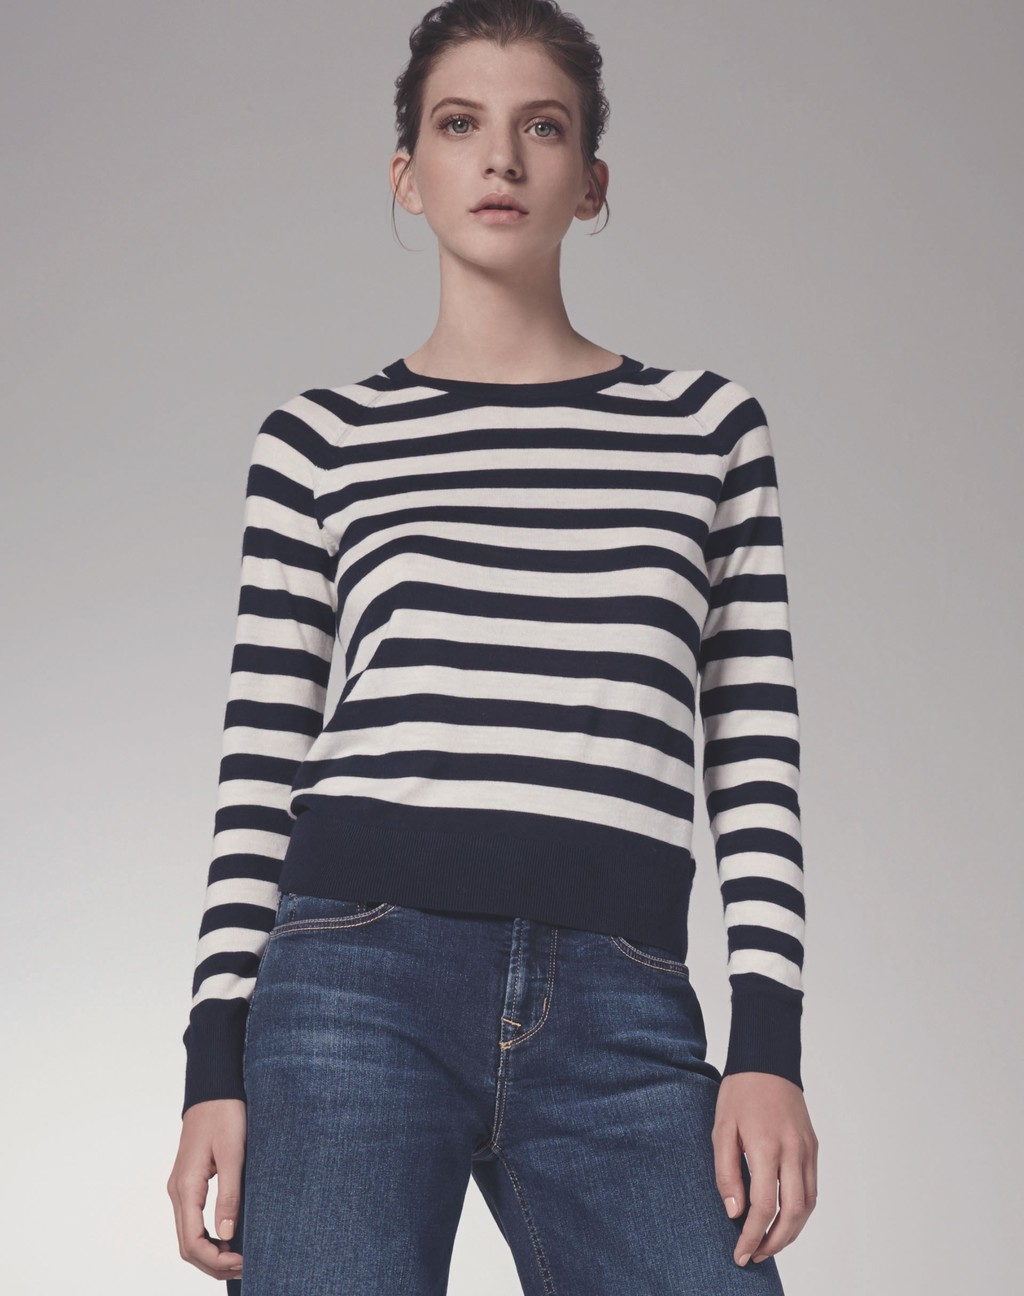 Stripe Raglan Crew - pattern: horizontal stripes; style: sweat top; predominant colour: white; secondary colour: black; occasions: casual, work, creative work; length: standard; fibres: wool - 100%; fit: body skimming; neckline: crew; sleeve length: long sleeve; sleeve style: standard; texture group: knits/crochet; pattern type: knitted - fine stitch; multicoloured: multicoloured; season: s/s 2016; wardrobe: basic